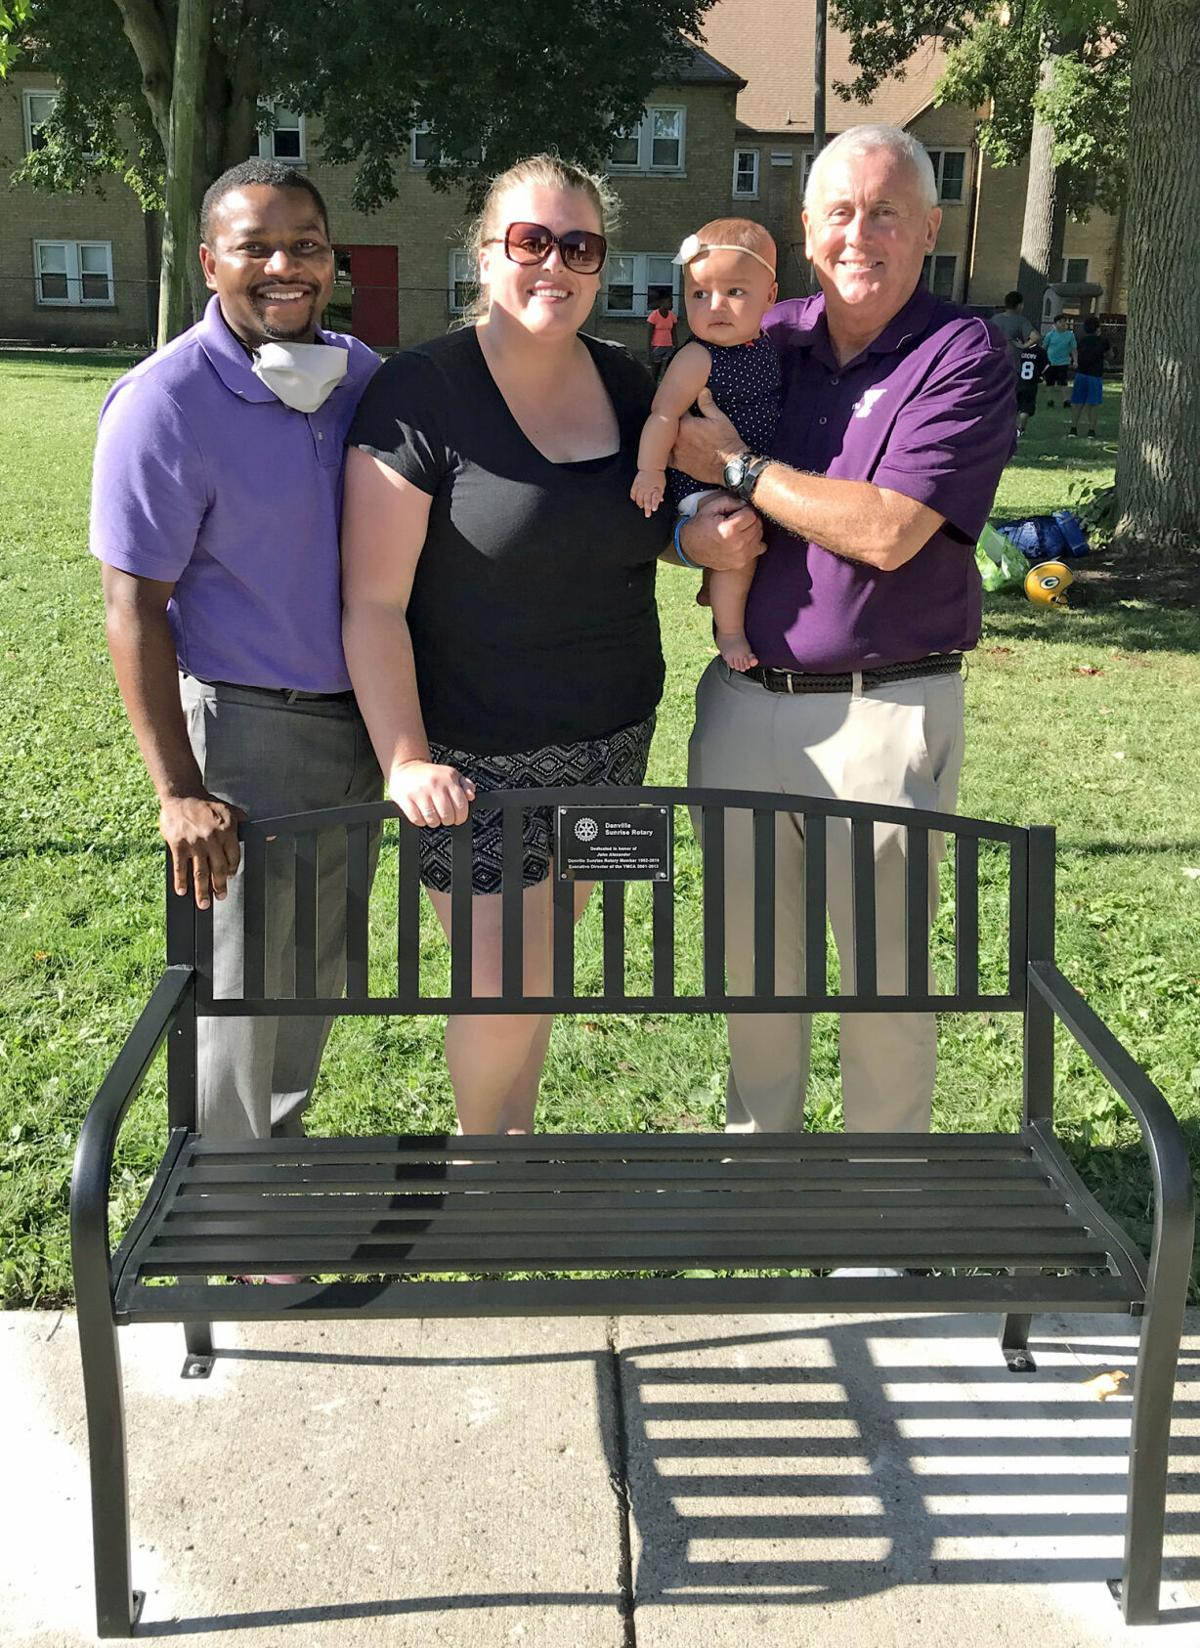 Bench at YM  honors Alexander